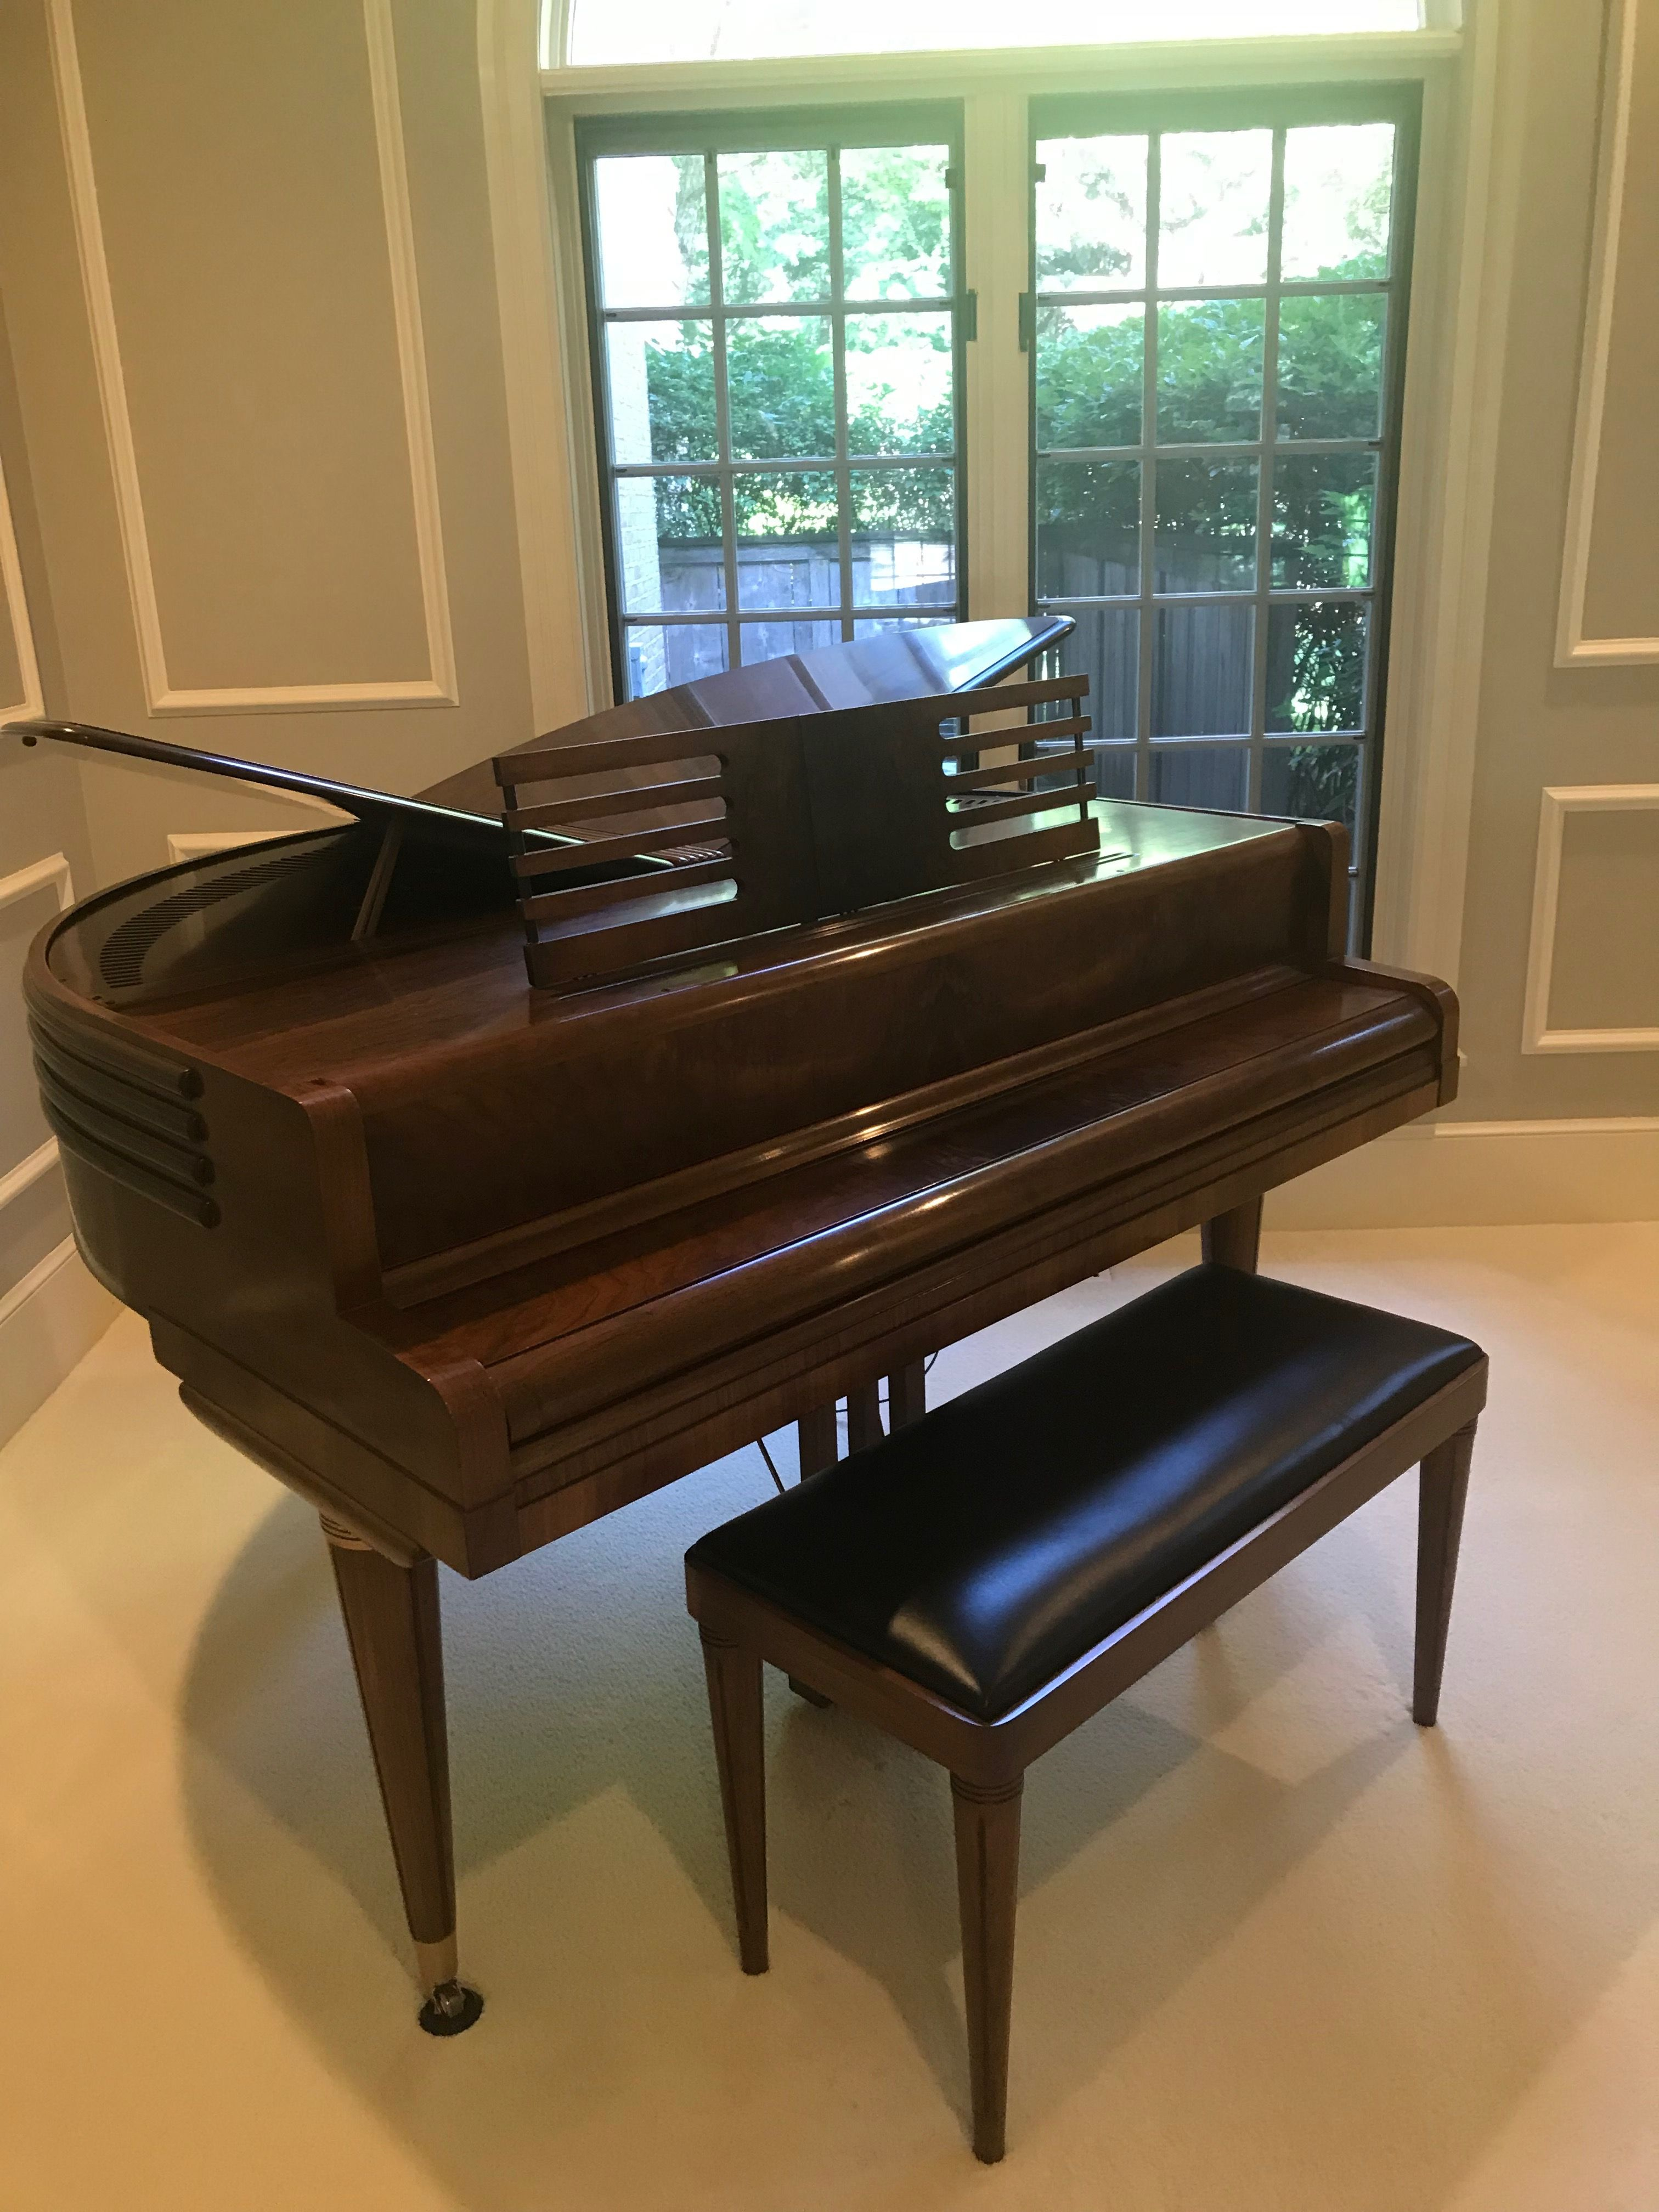 Pin by Ellen Oglesby on Main Living Room | Piano, Music ...